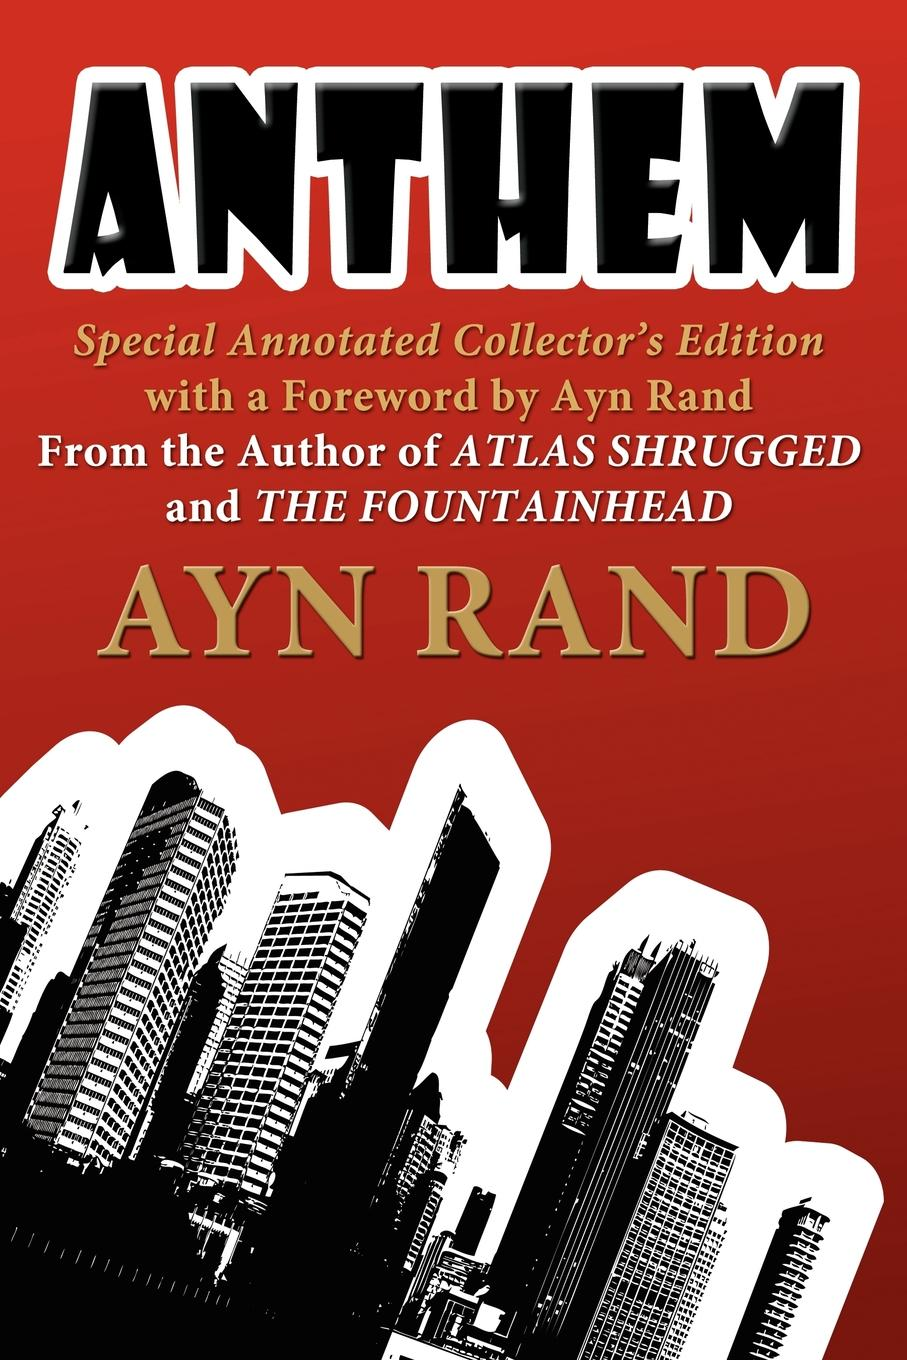 лучшая цена Ayn Rand Anthem. Special Annotated Collectors Edition with a Foreward by Ayn Rand